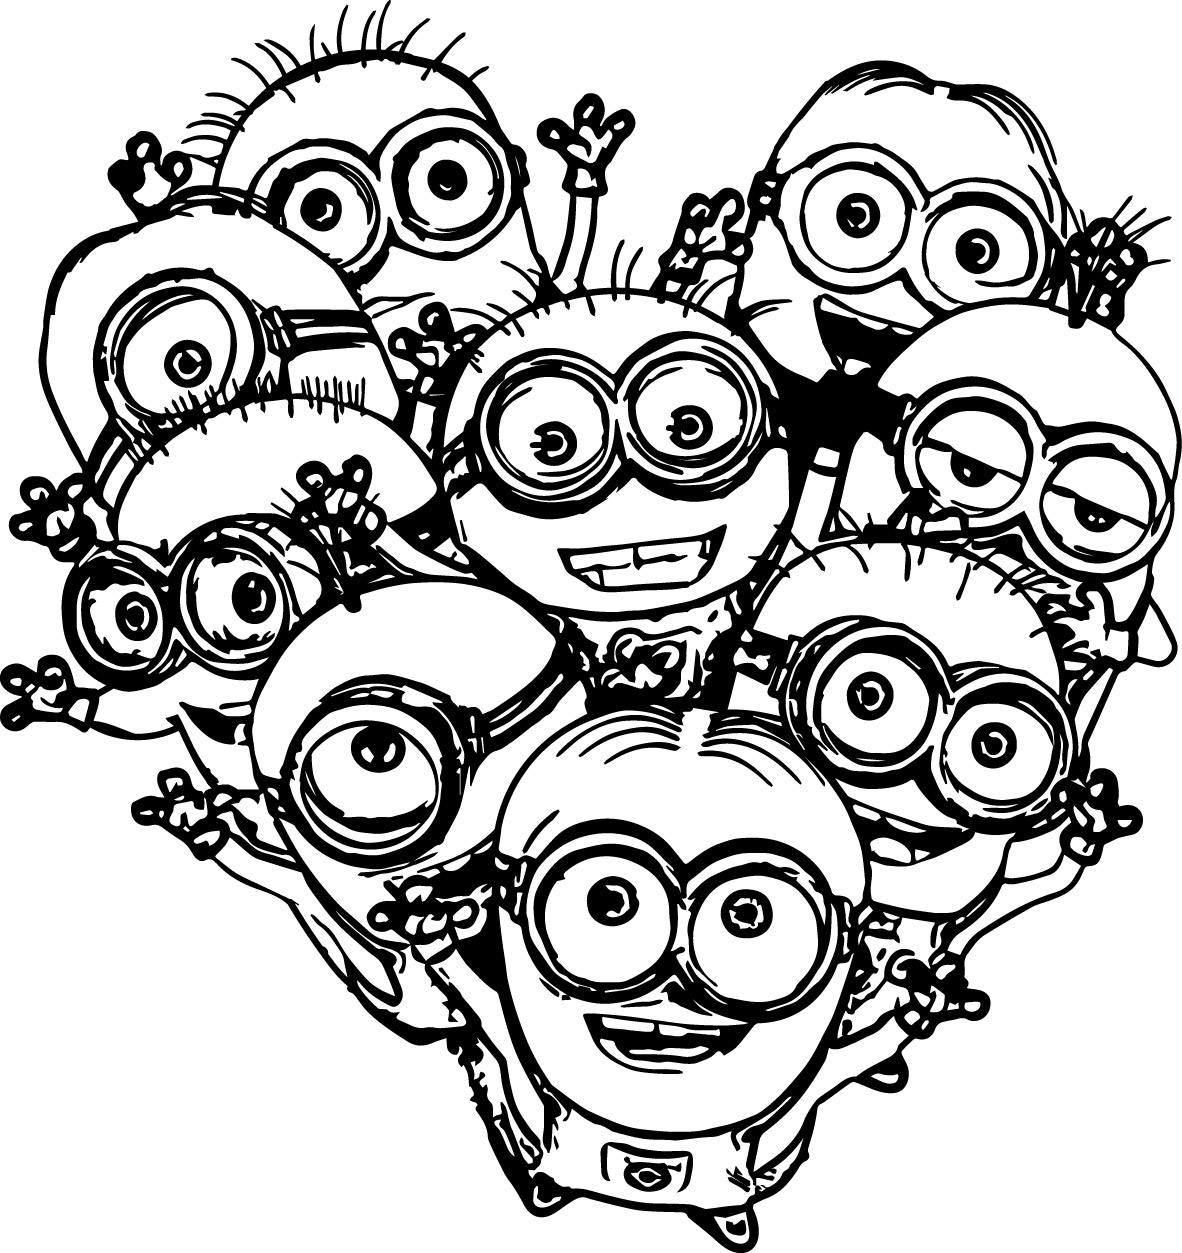 1182x1253 Wonderful Ferris Wheel Coloring Pages Further Efficient Article